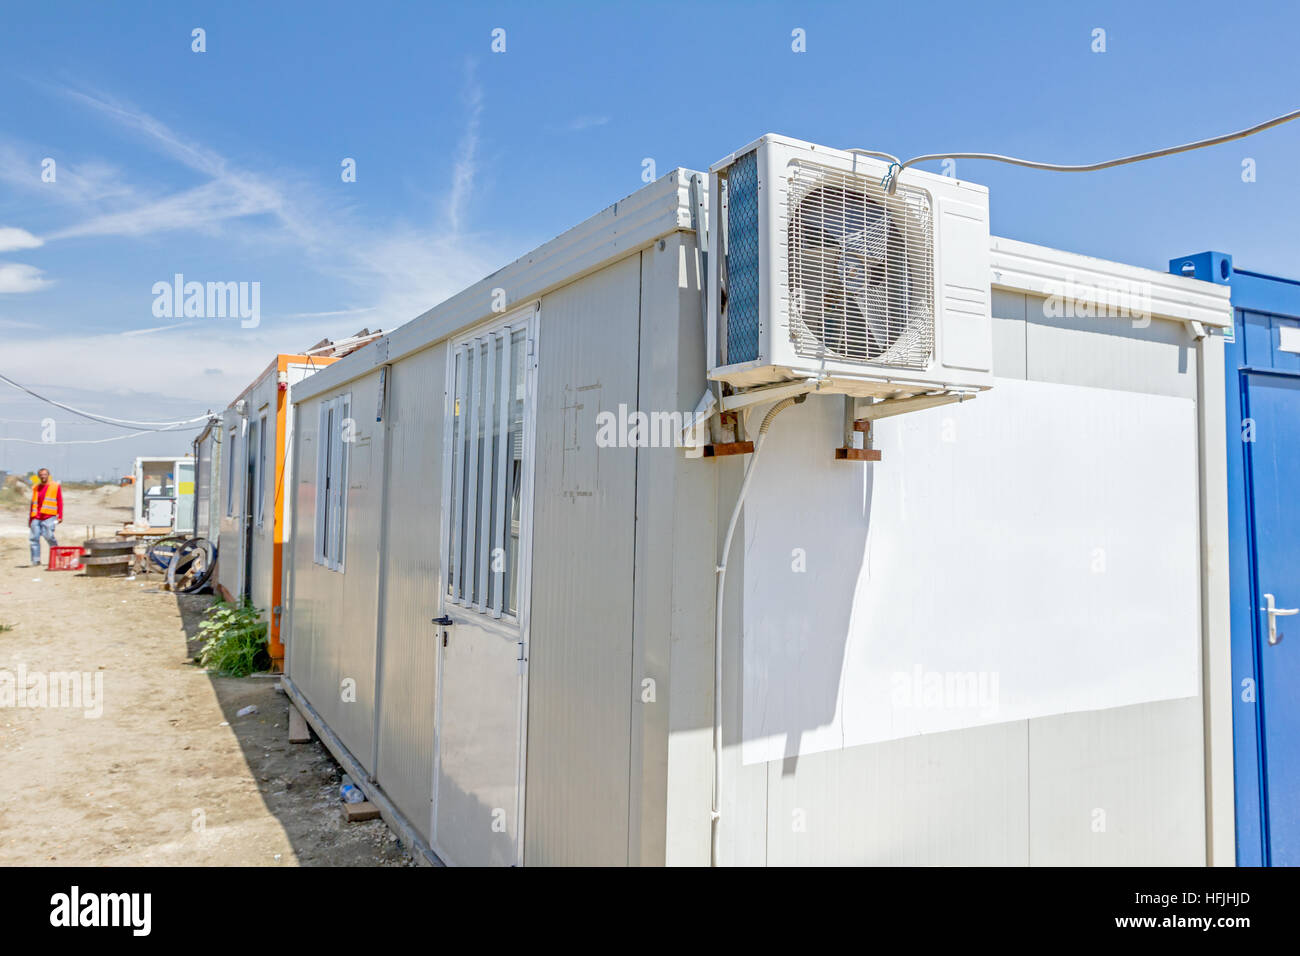 air conditioner container outdoor light wiring diagram unit compressor of is placed on